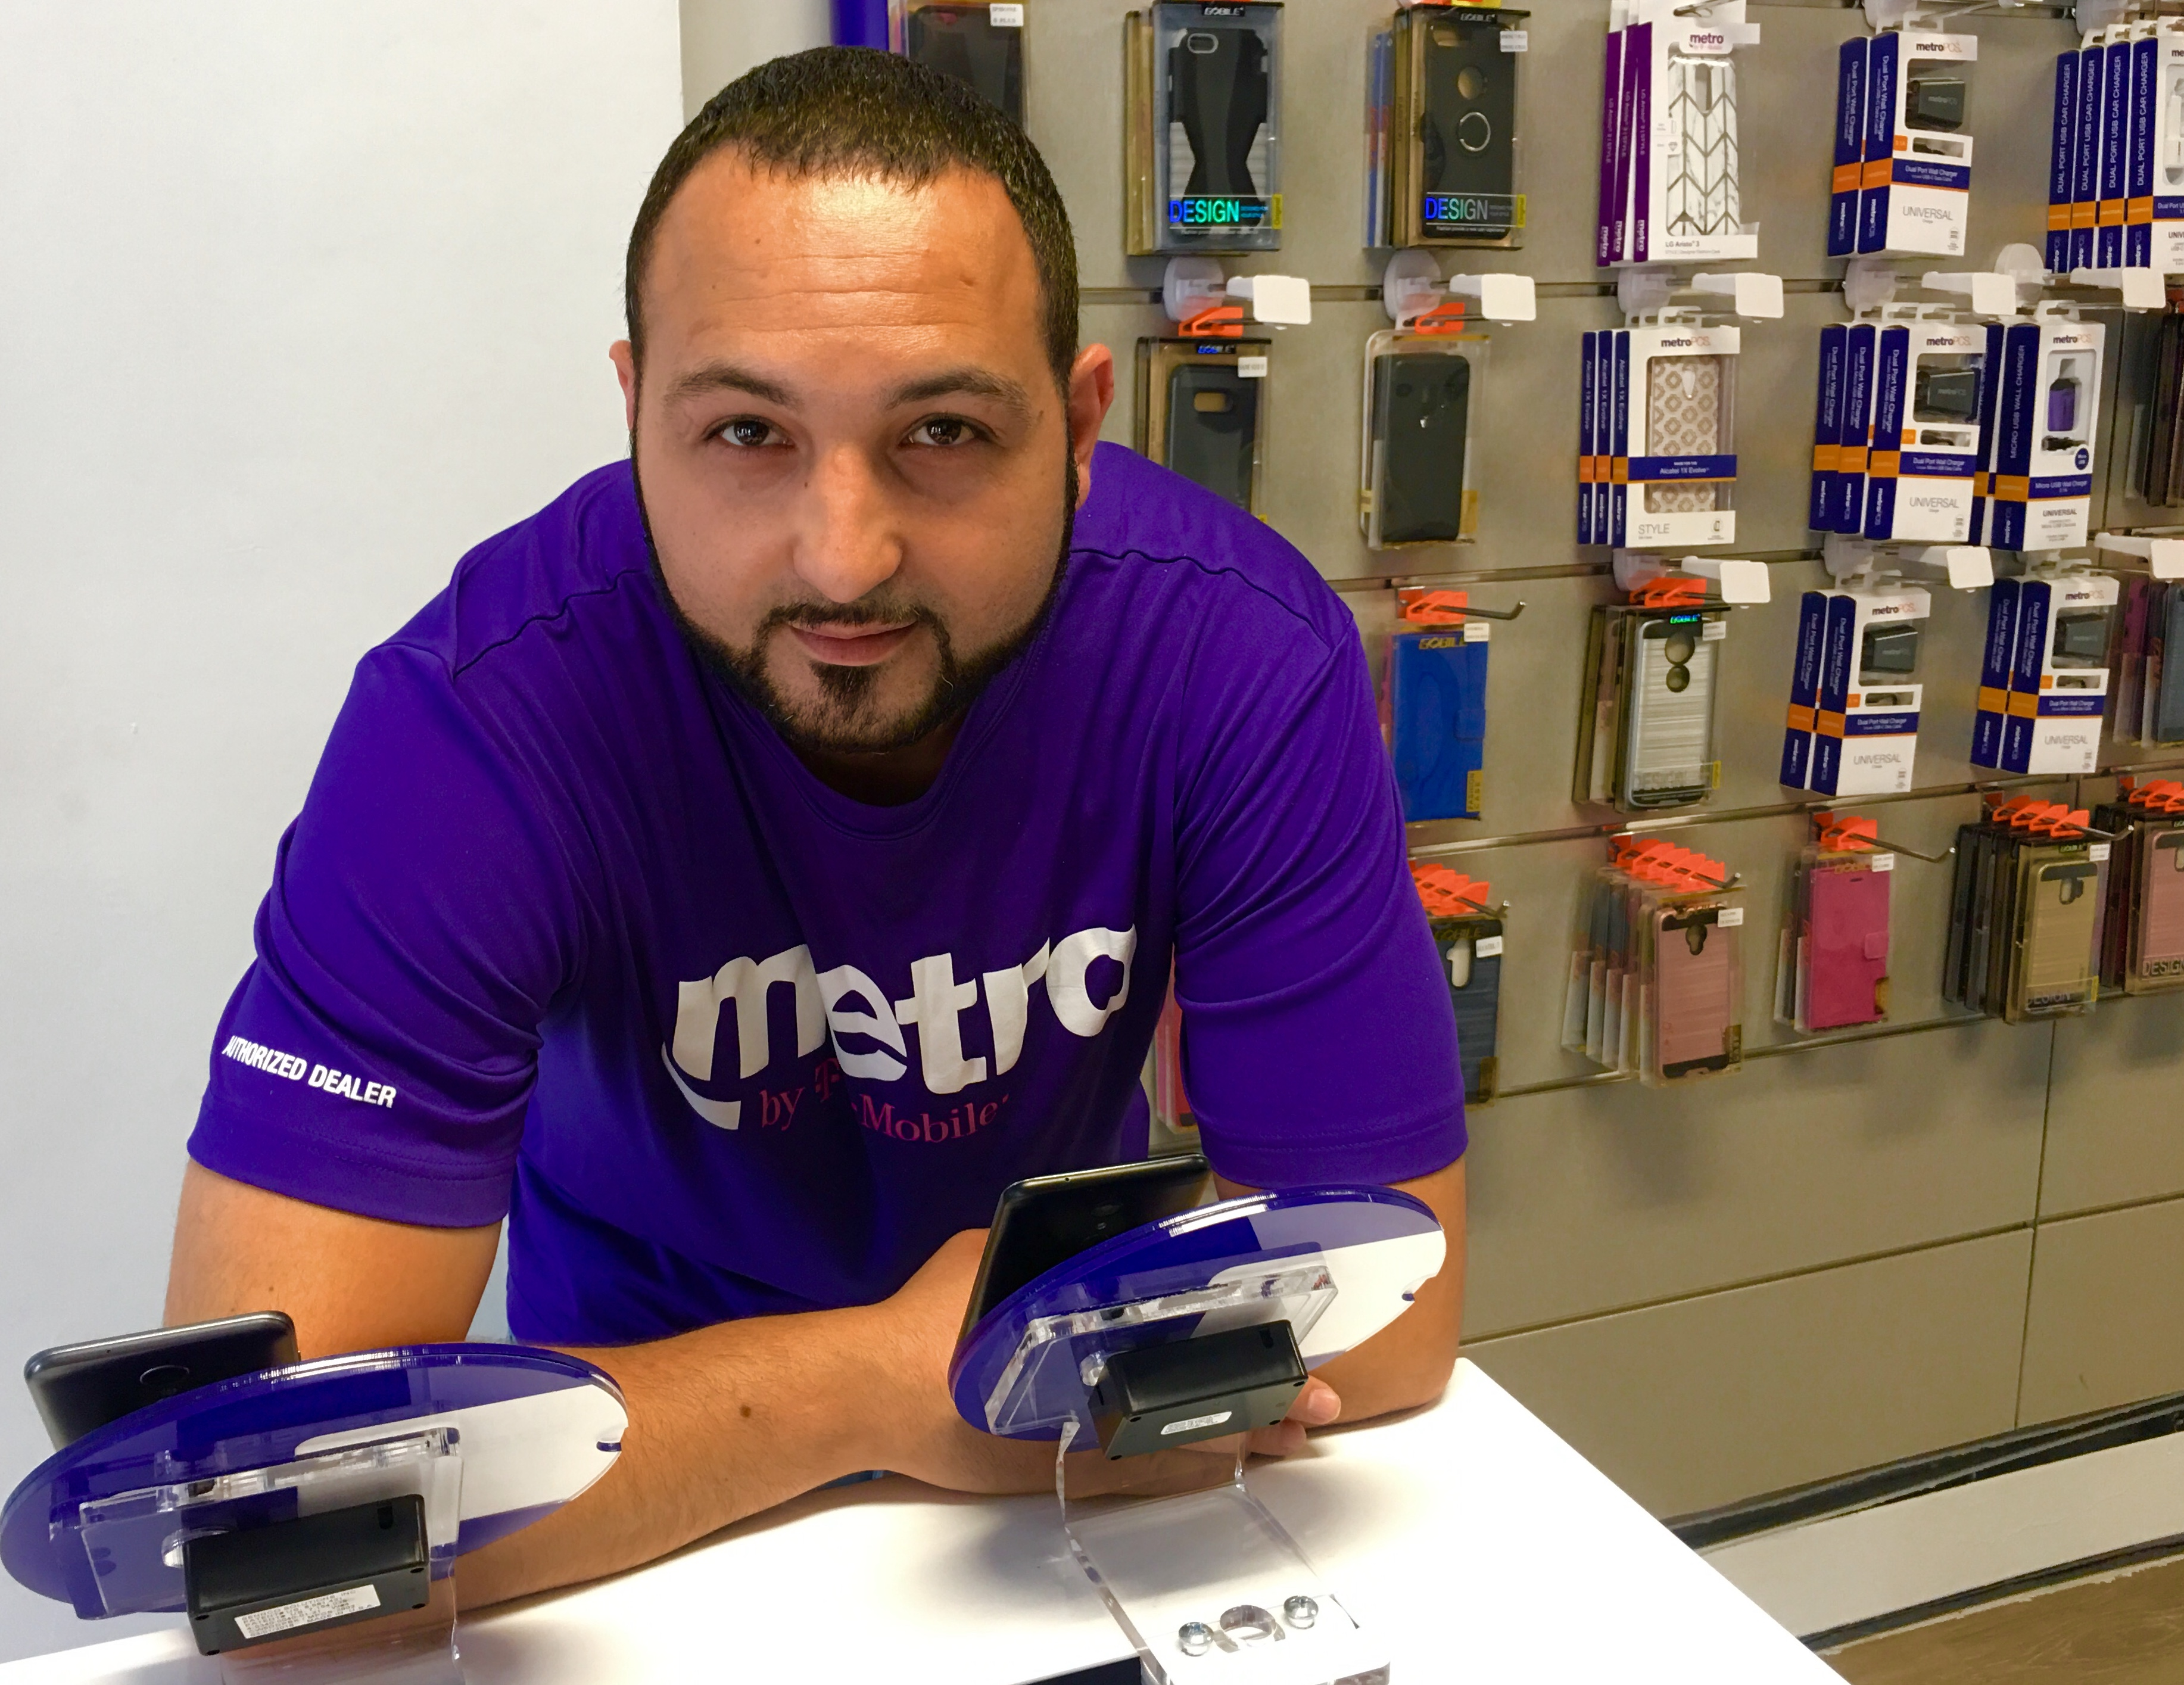 Antar Asad is the manager of Metro by T-Mobile on Church Avenue. Eagle photo by Lore Croghan